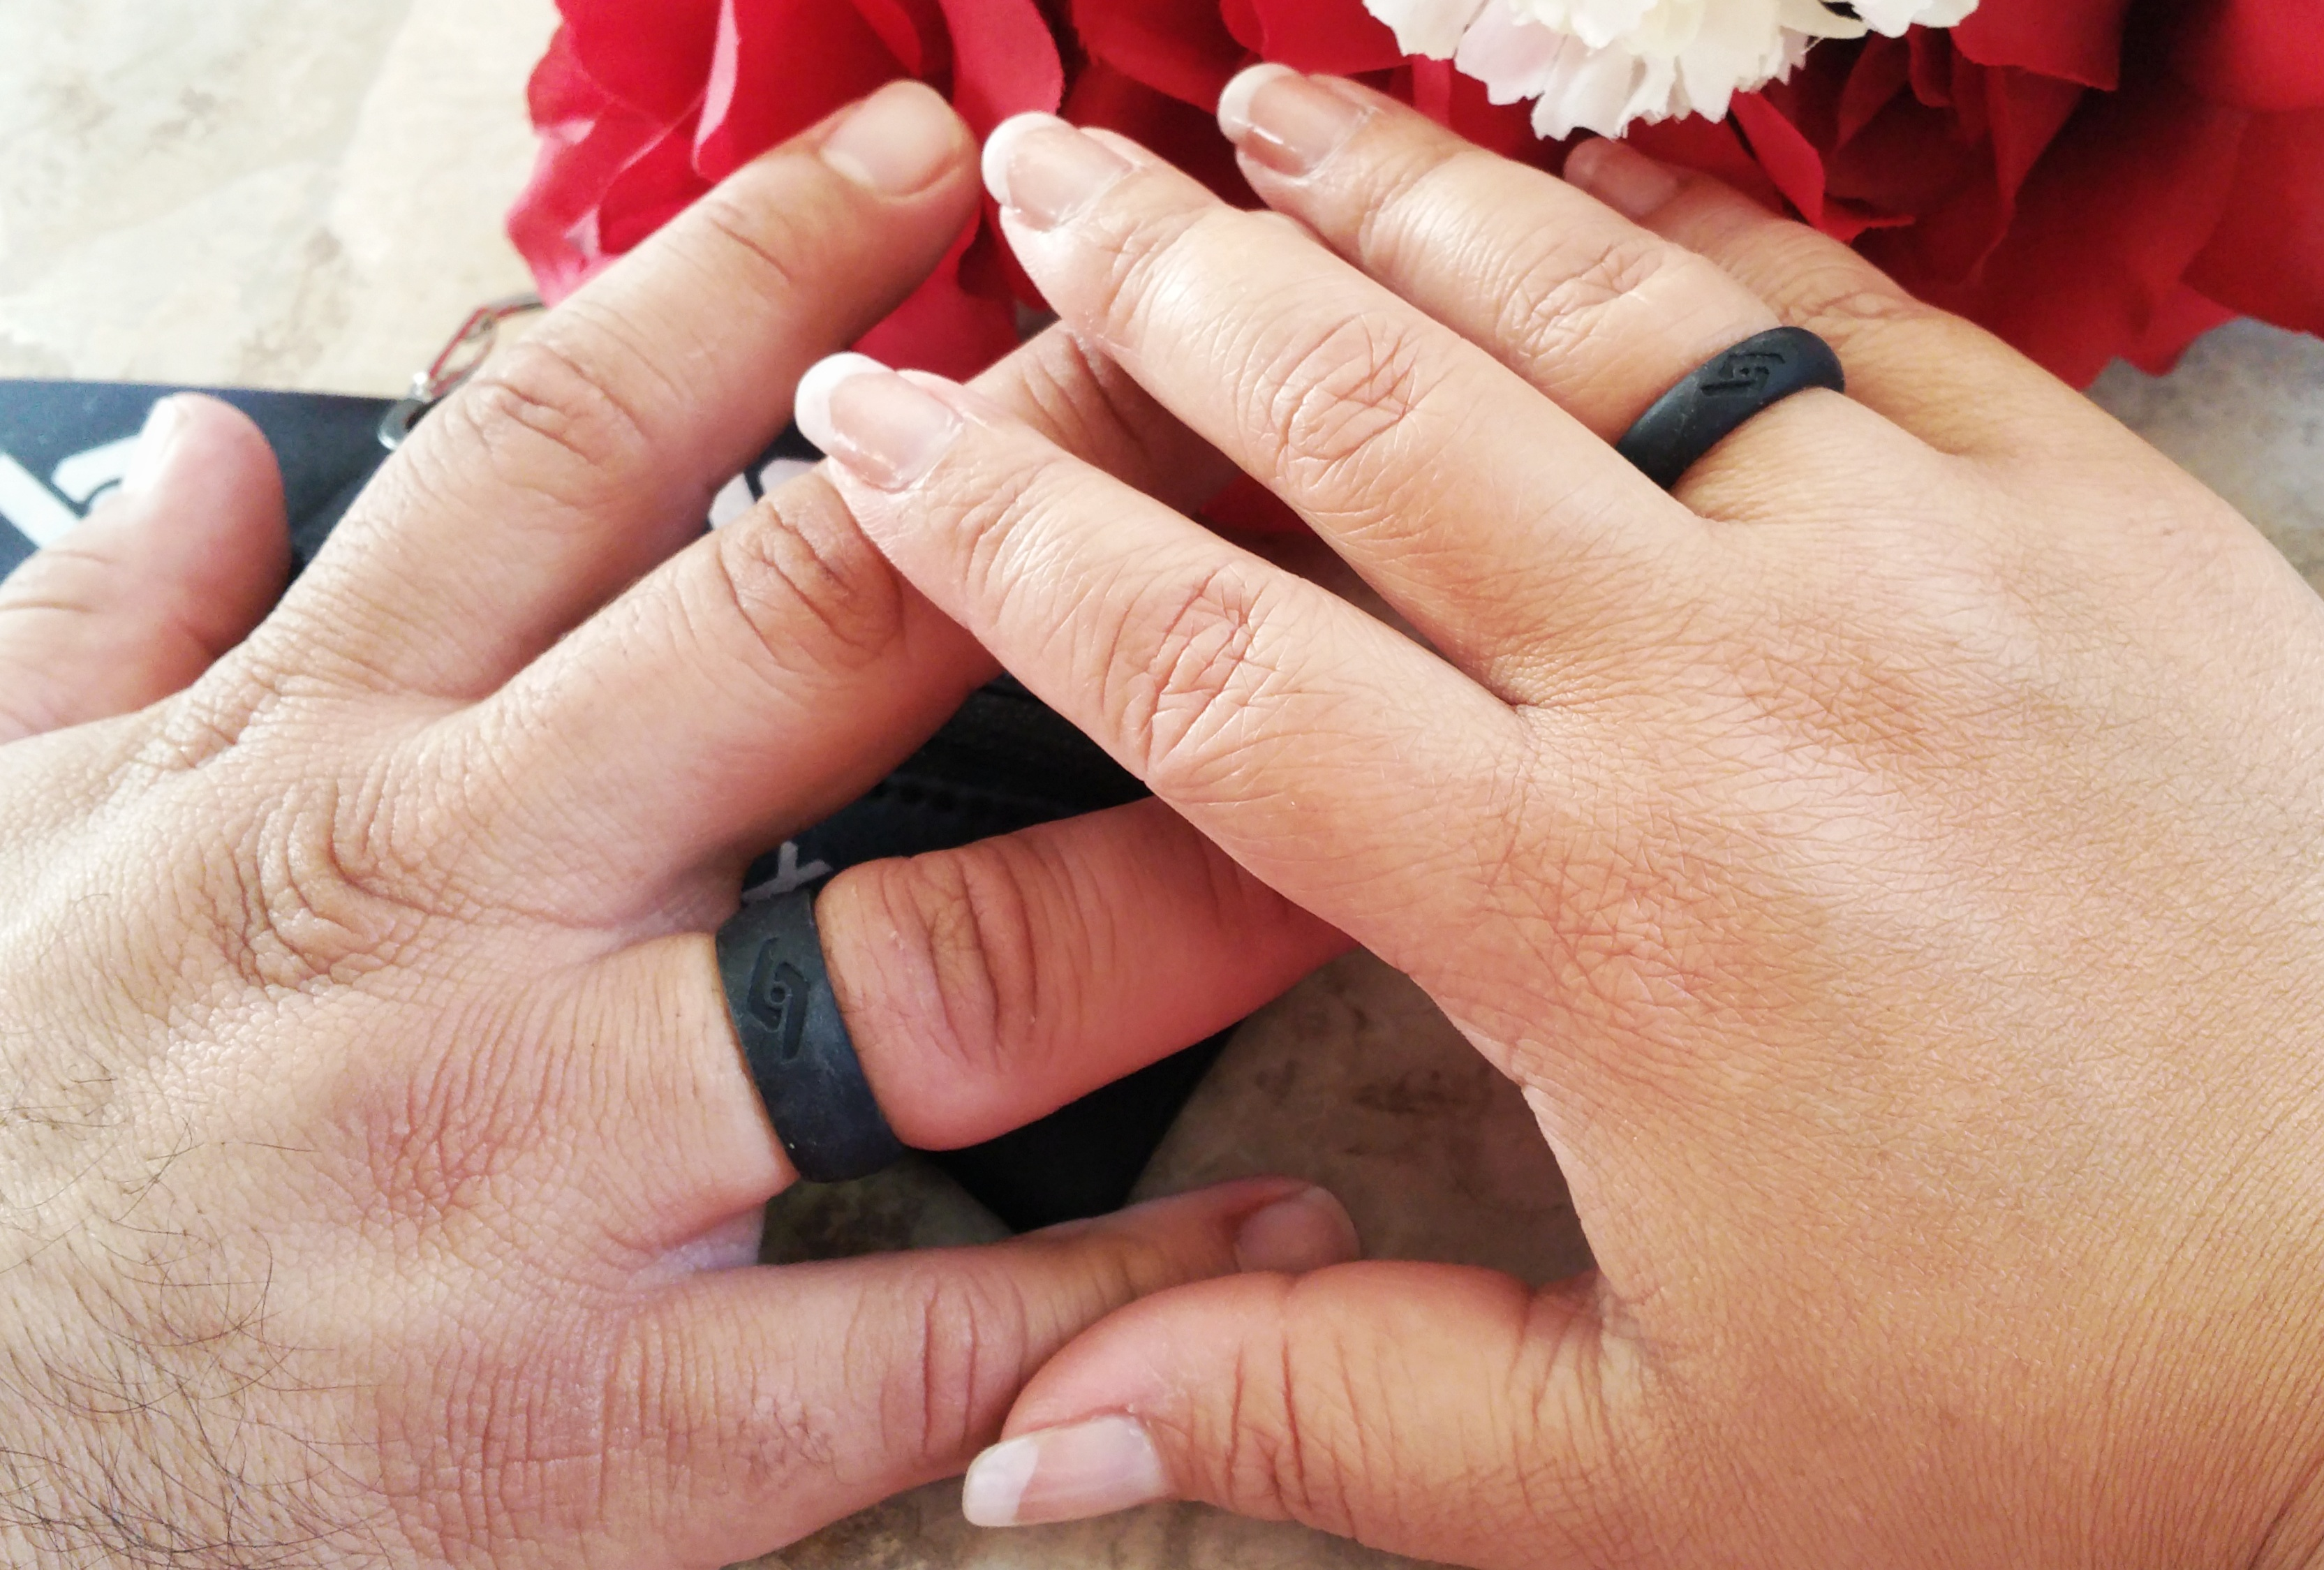 Valentine's Gifts, gifts, gift guide, gift idea, Valentine's Day, love, sentimental, sentiment, rings, silicone rings, body care, skin care, pampering, spa, love,